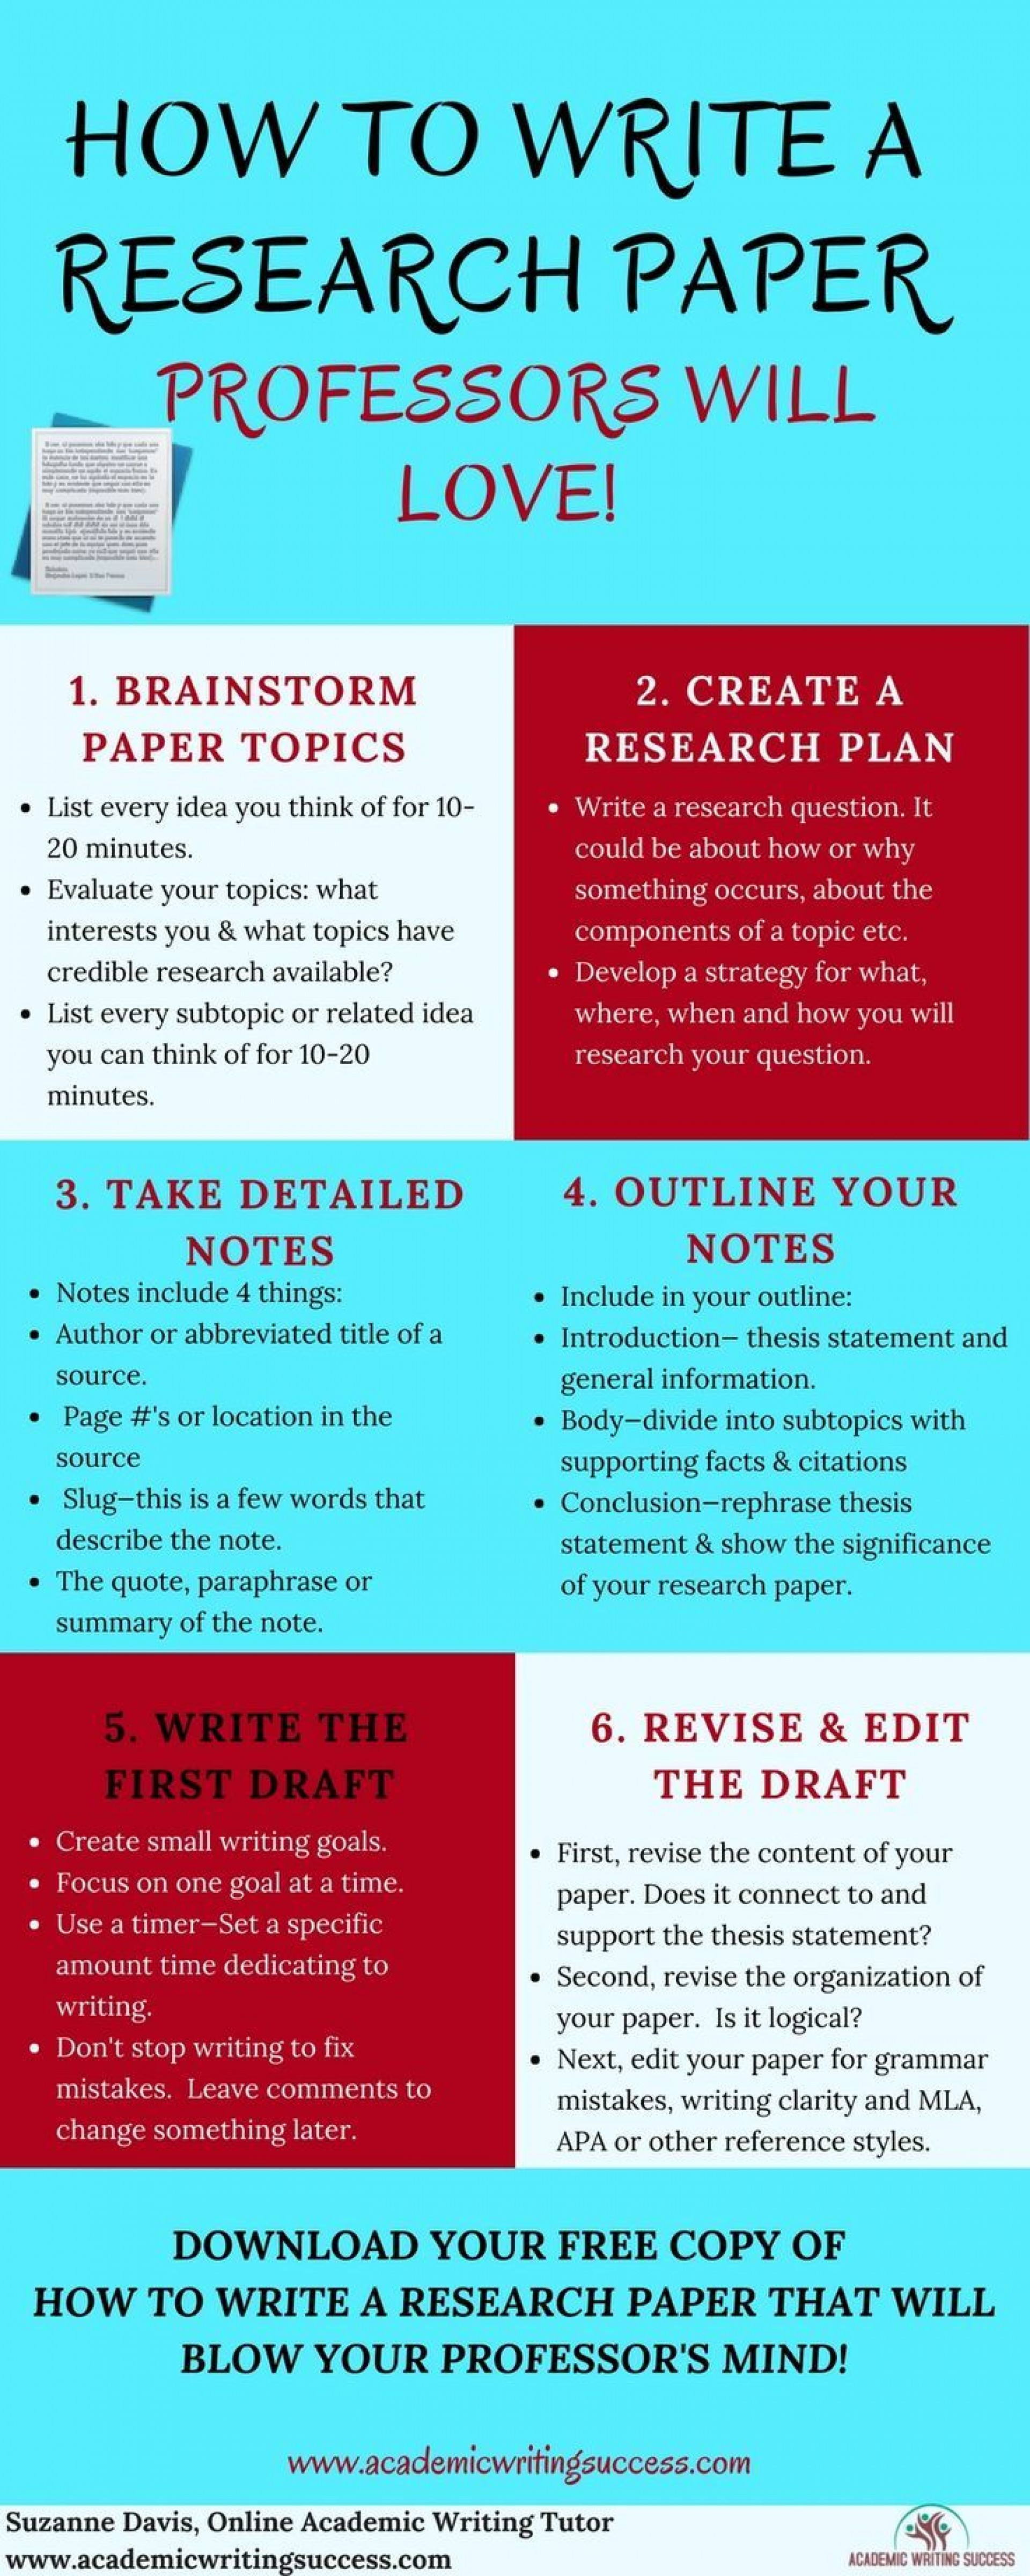 007 Research Paper Steps To Writing Fearsome A In Apa Format Mla Style 1920